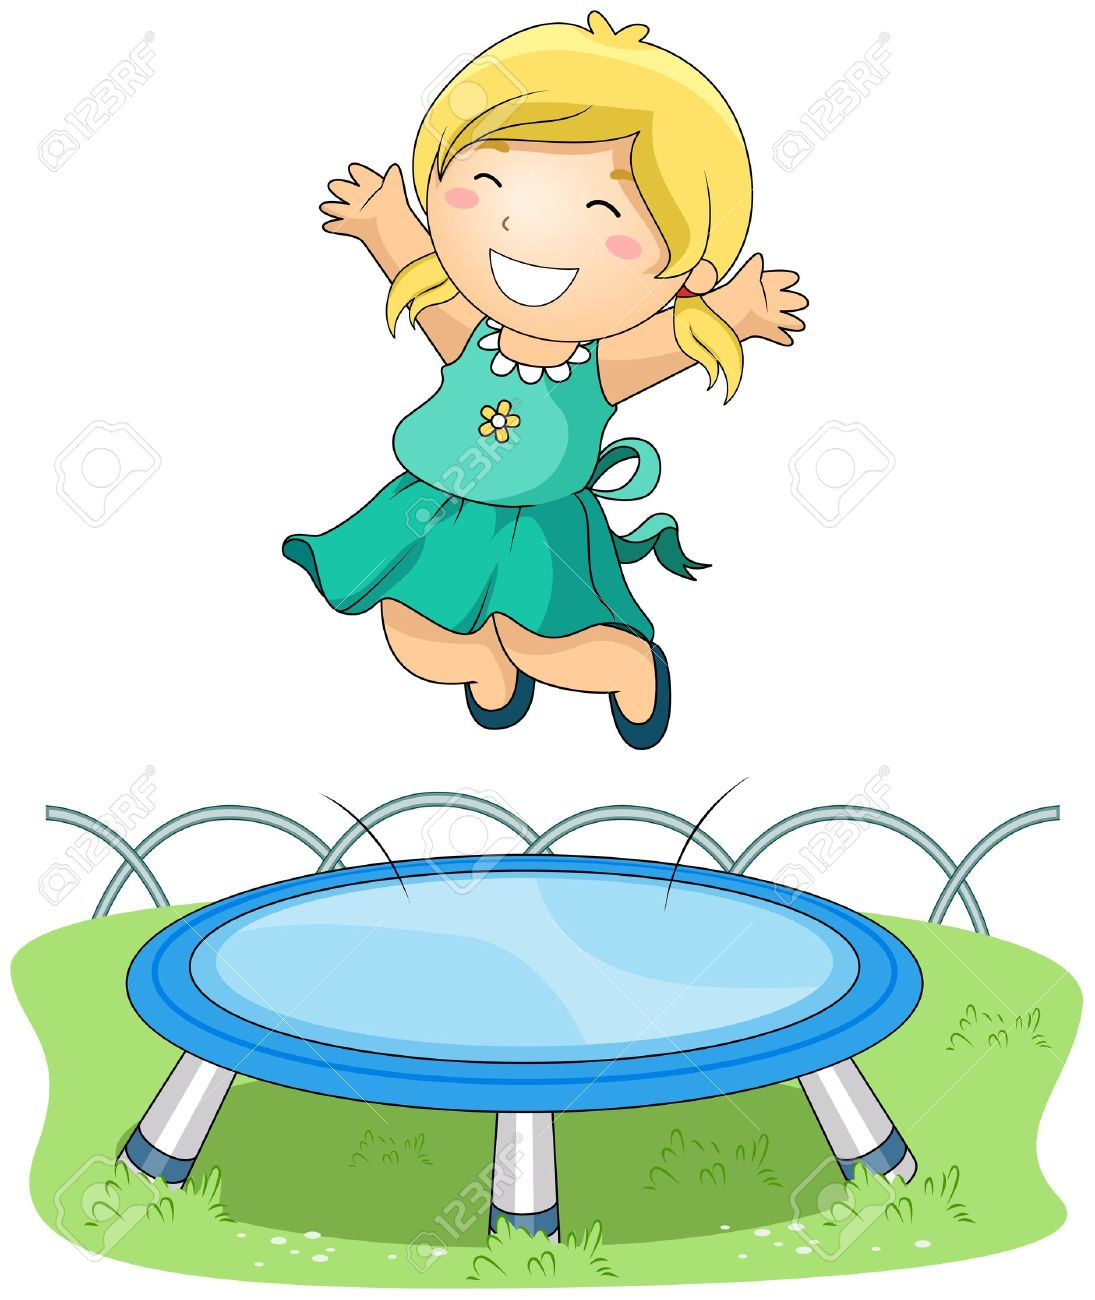 Clipart jumping graphic Jumping clipart 8 » Clipart Station graphic